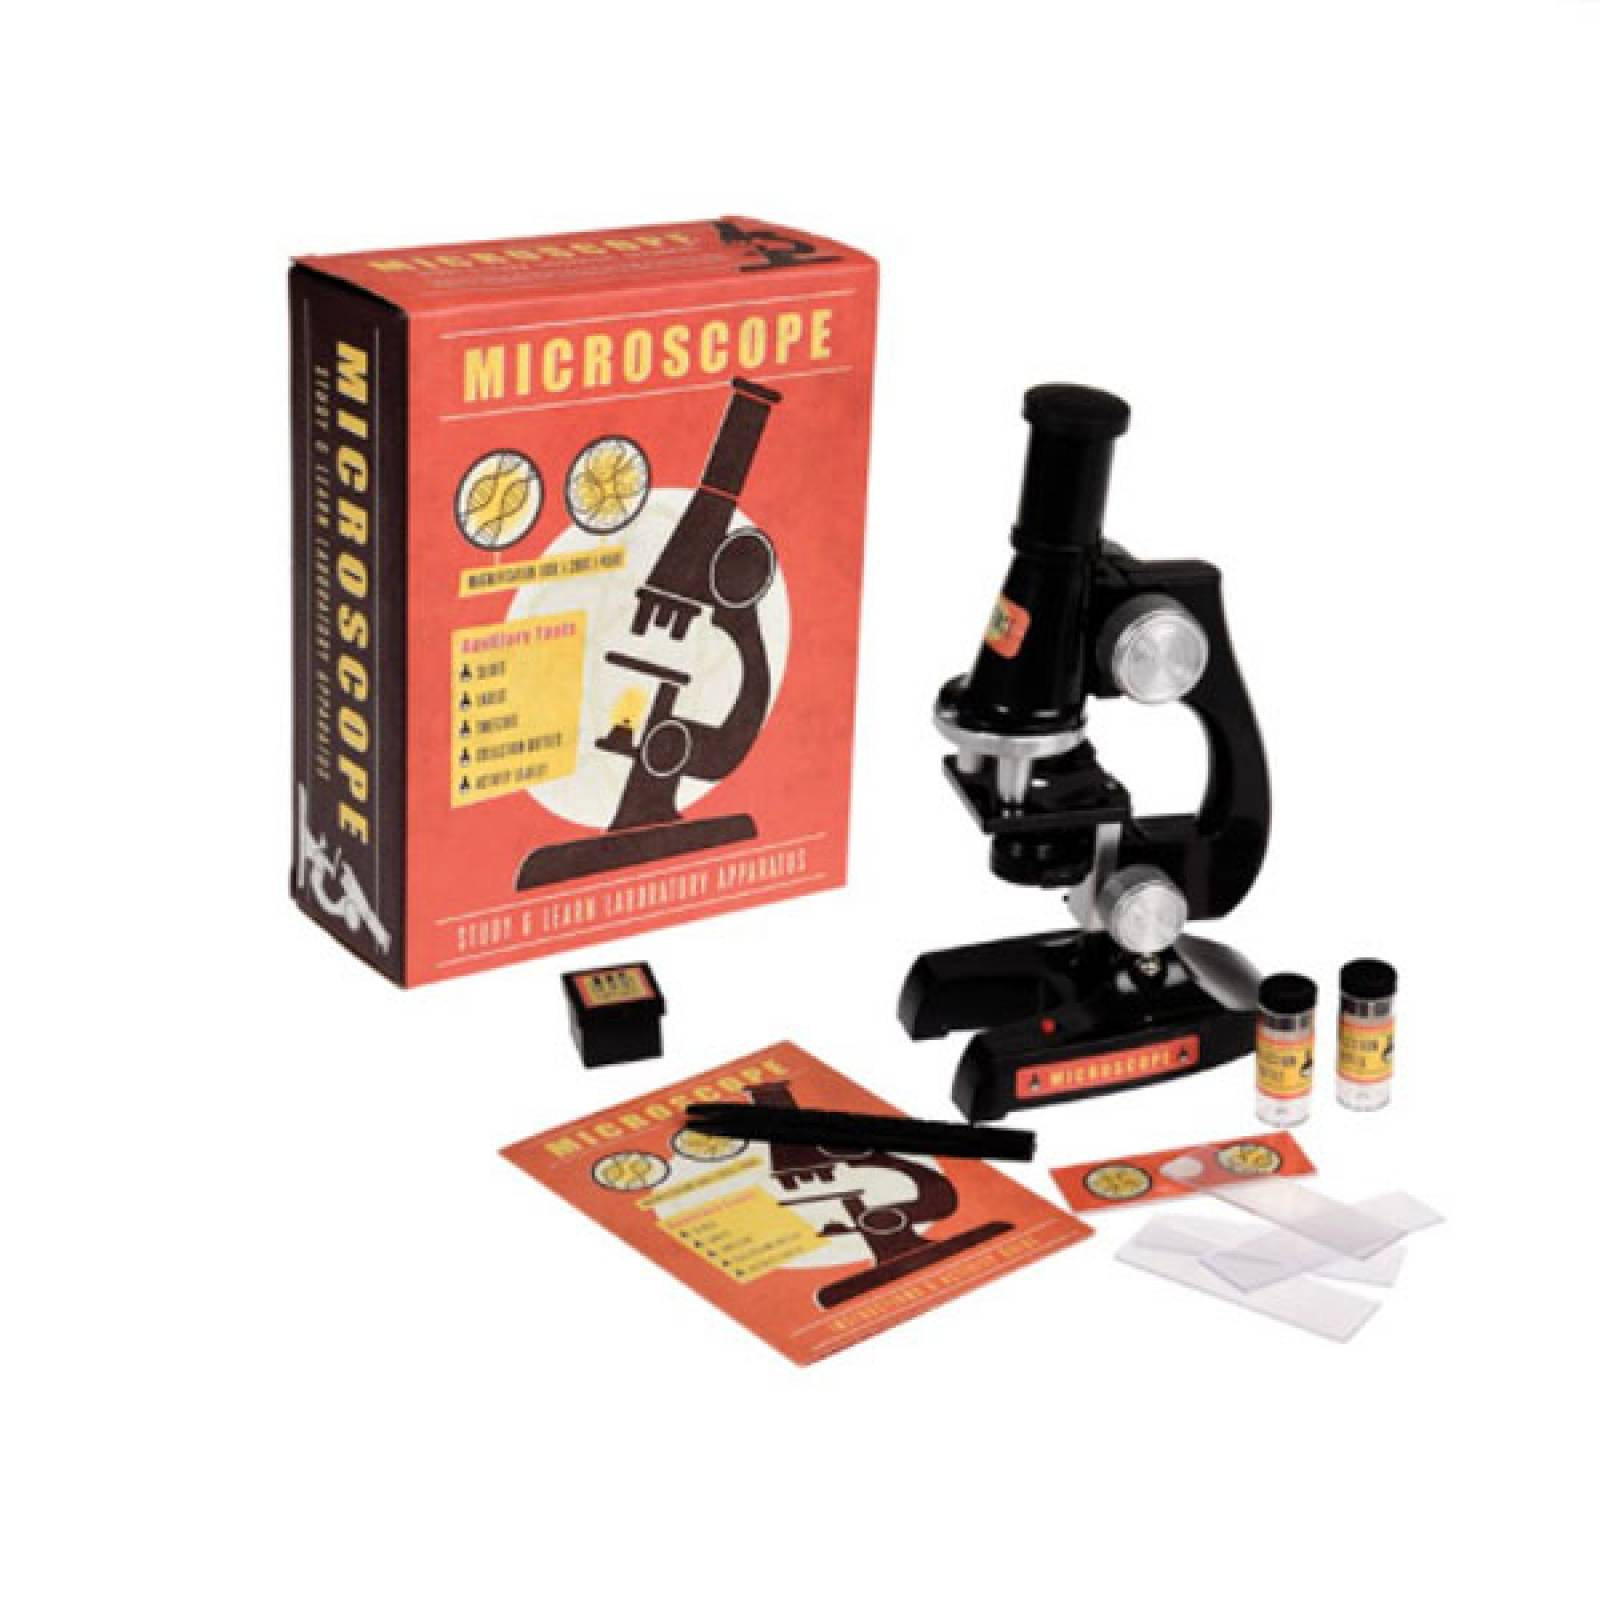 Microscope For Young Scientists 3Yr+